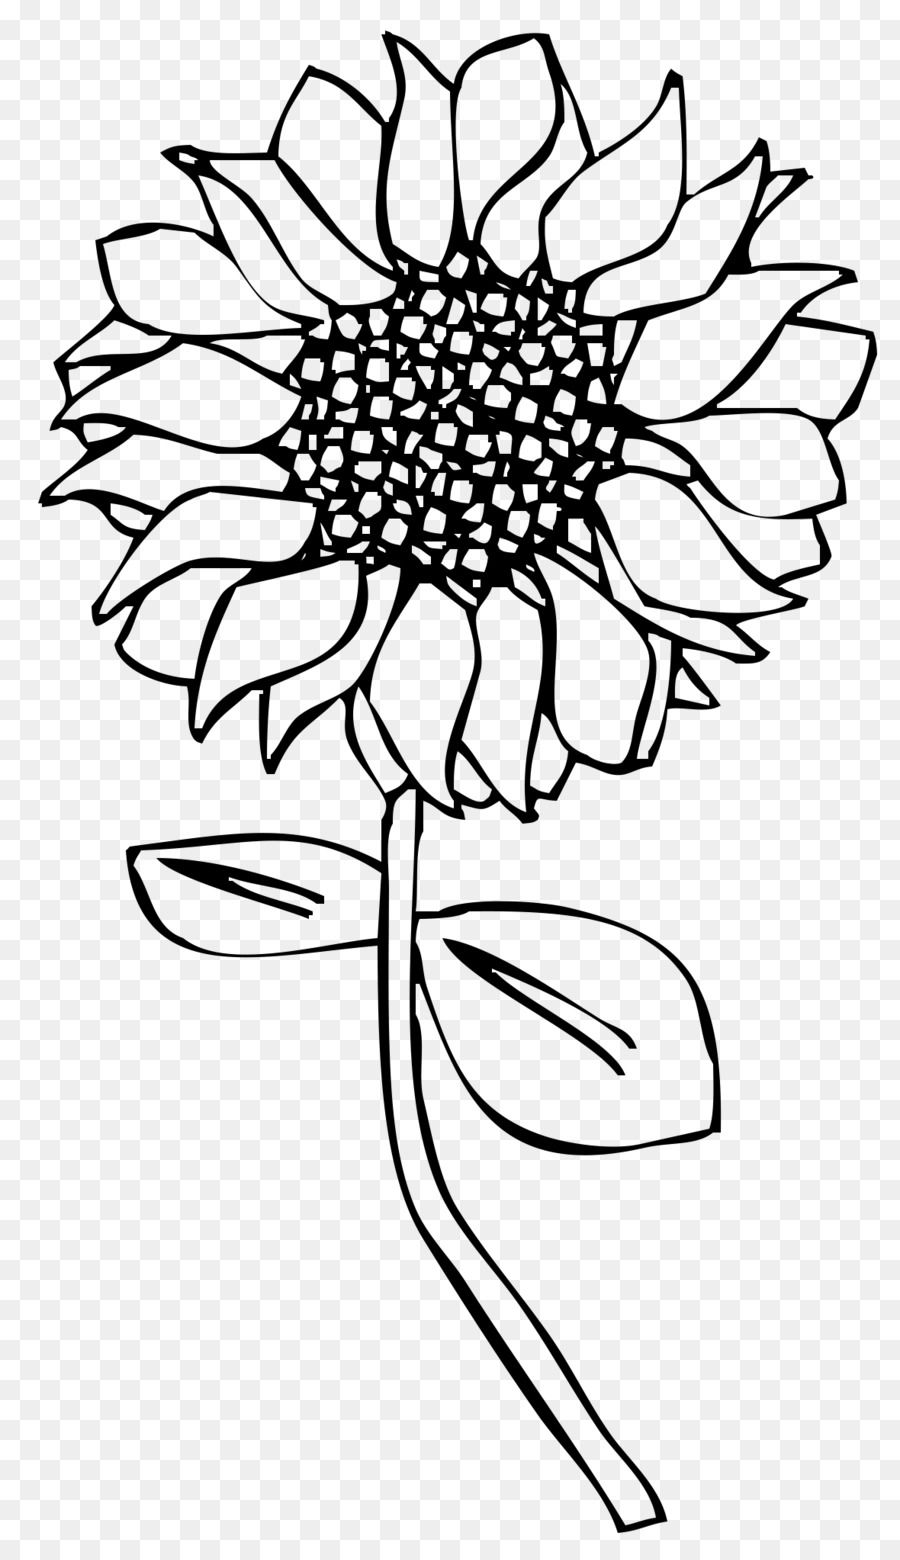 Line art Drawing Common sunflower Embroidery